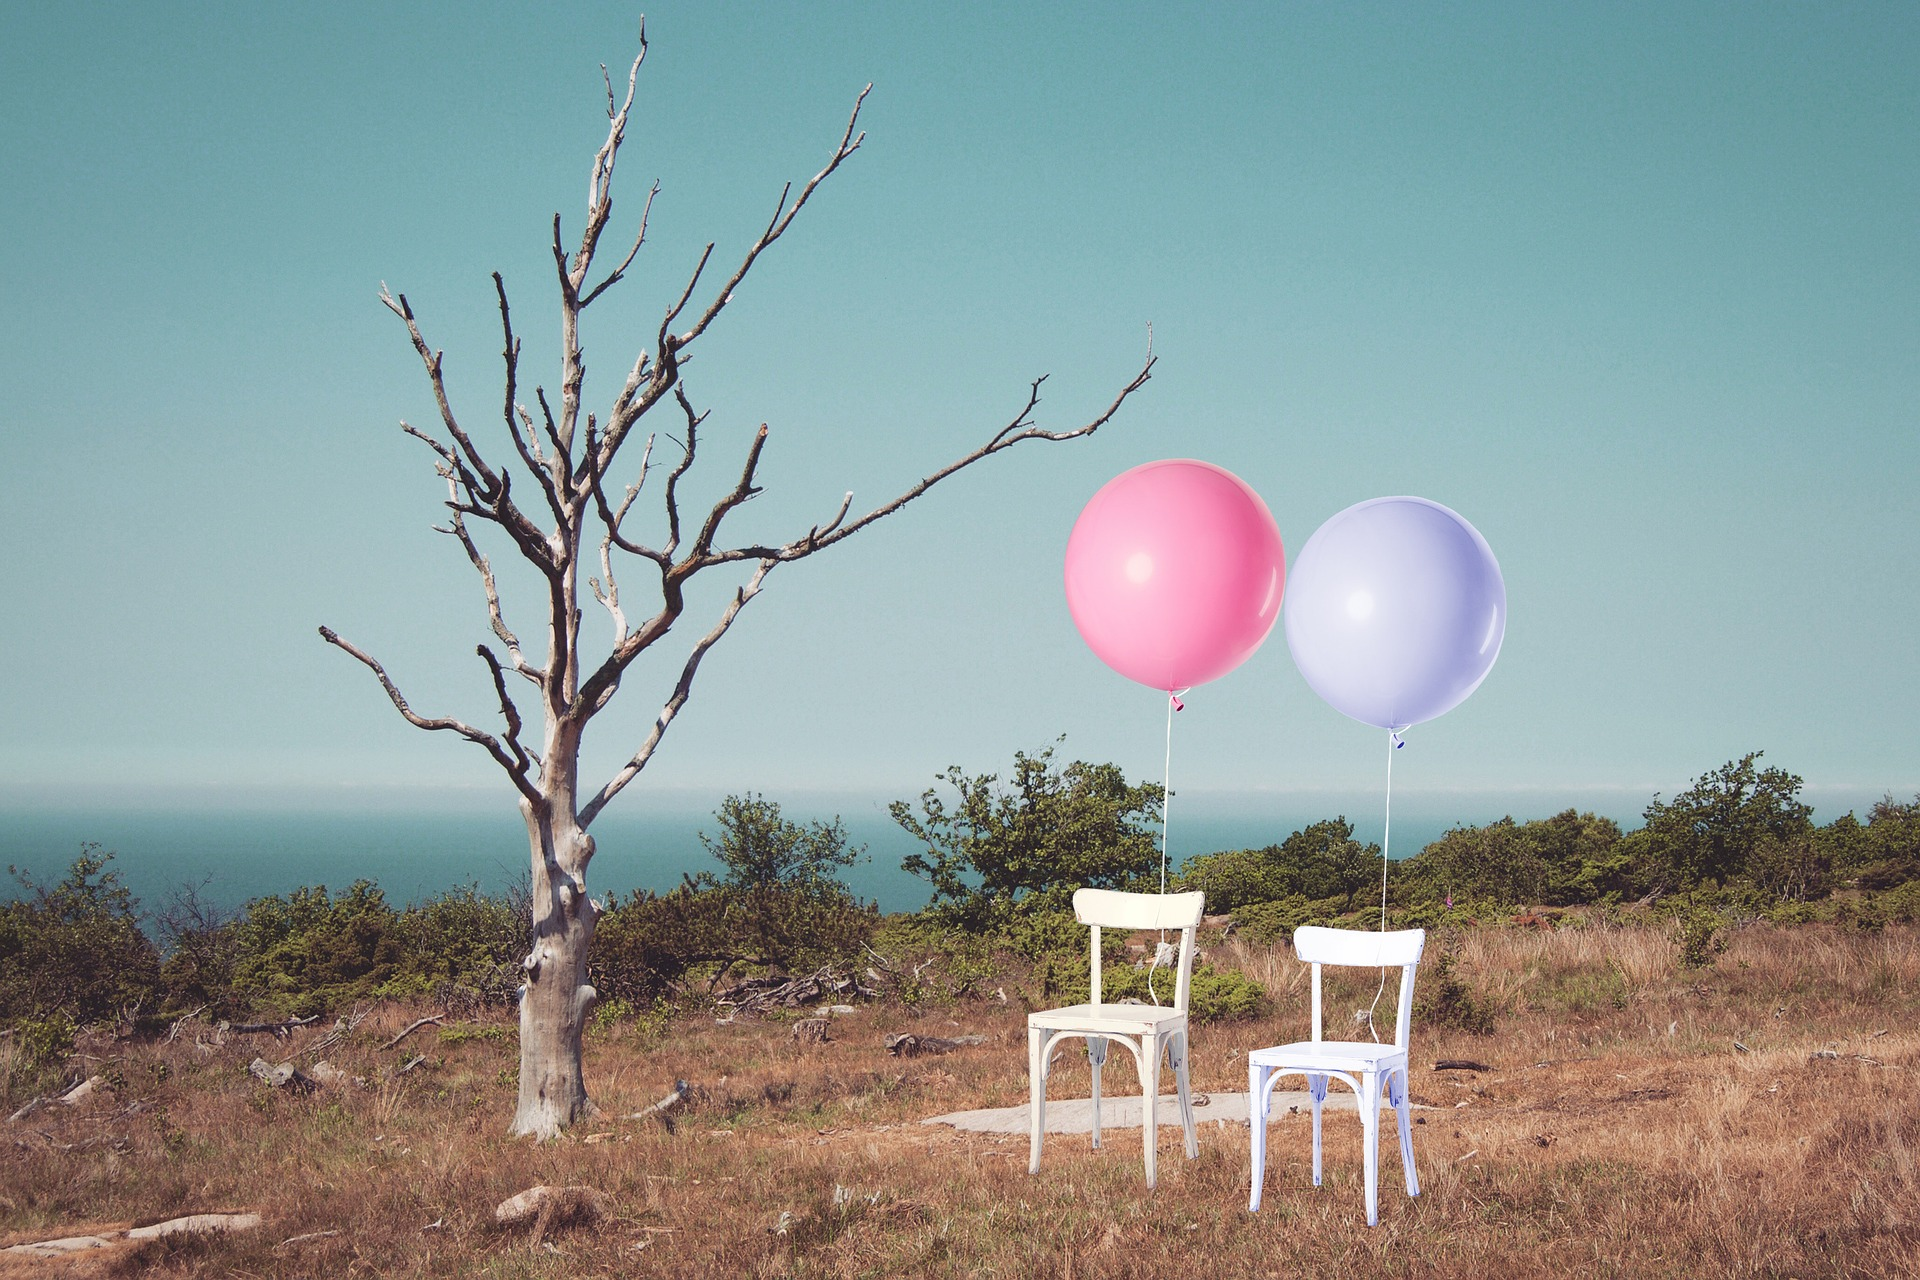 Abstract image of a barren landscape, with a tree with no leaves, two white chairs with one pink balloon and one lilac coloured balloon attached to each chair in the foreground